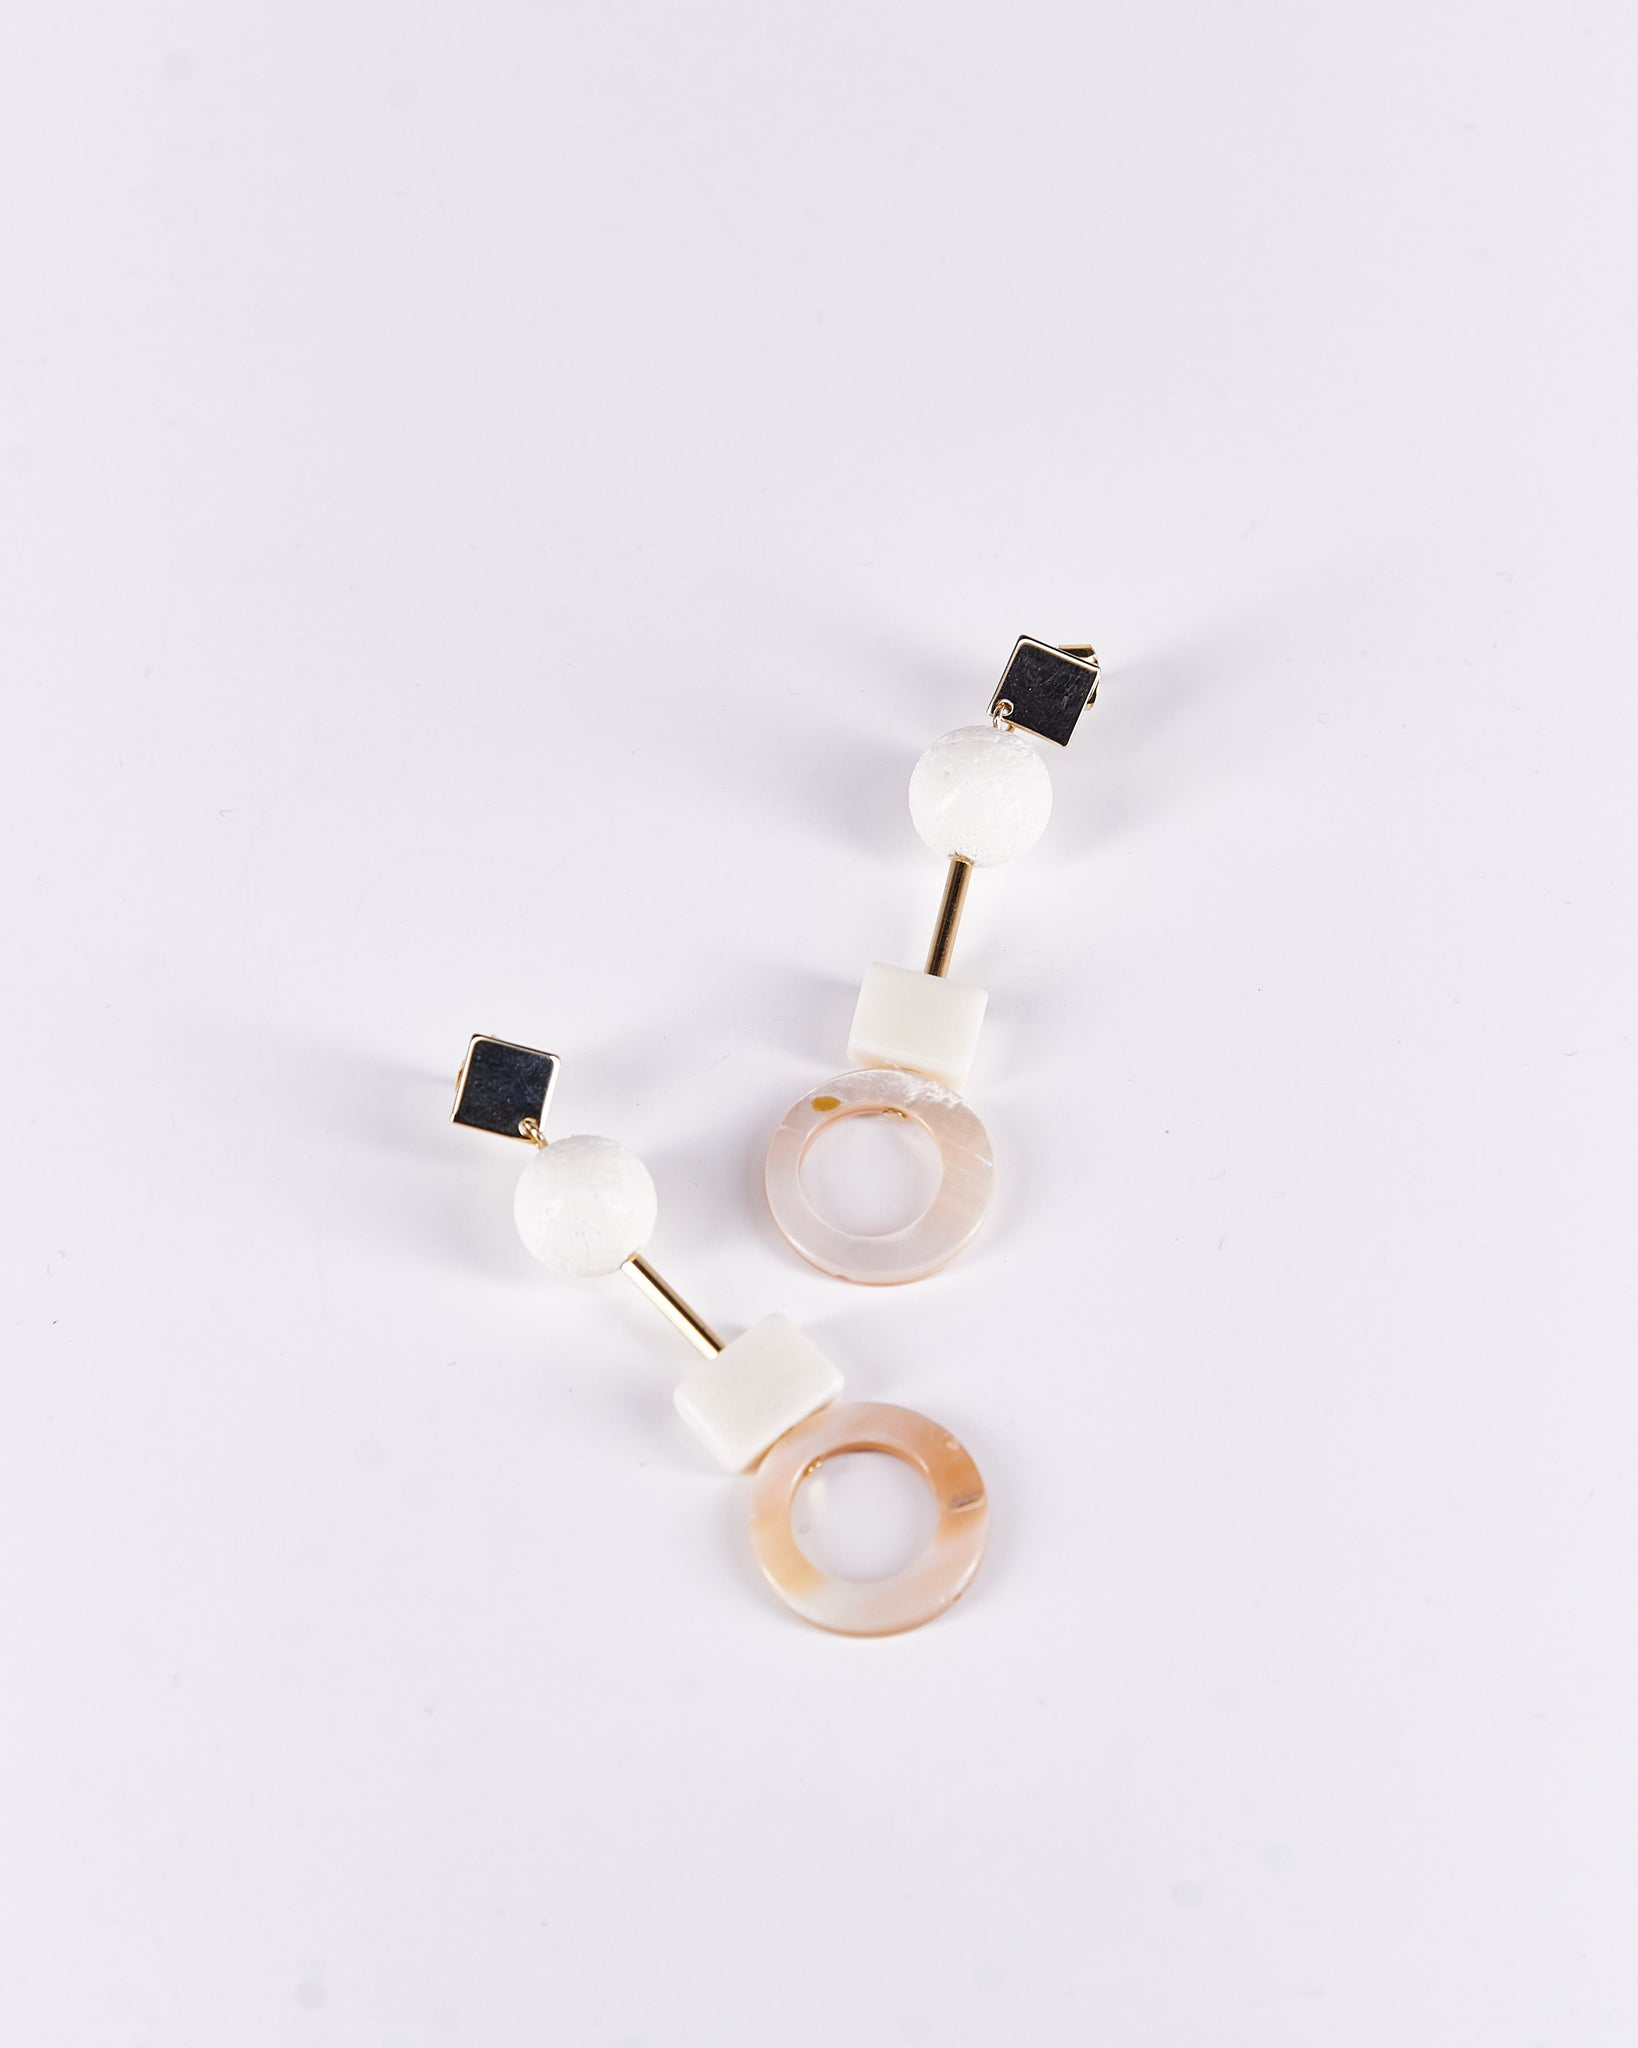 Earrings Pluto-Project Bon-Acetate-Handmade-Local Designers-Nuovum-Barcelona